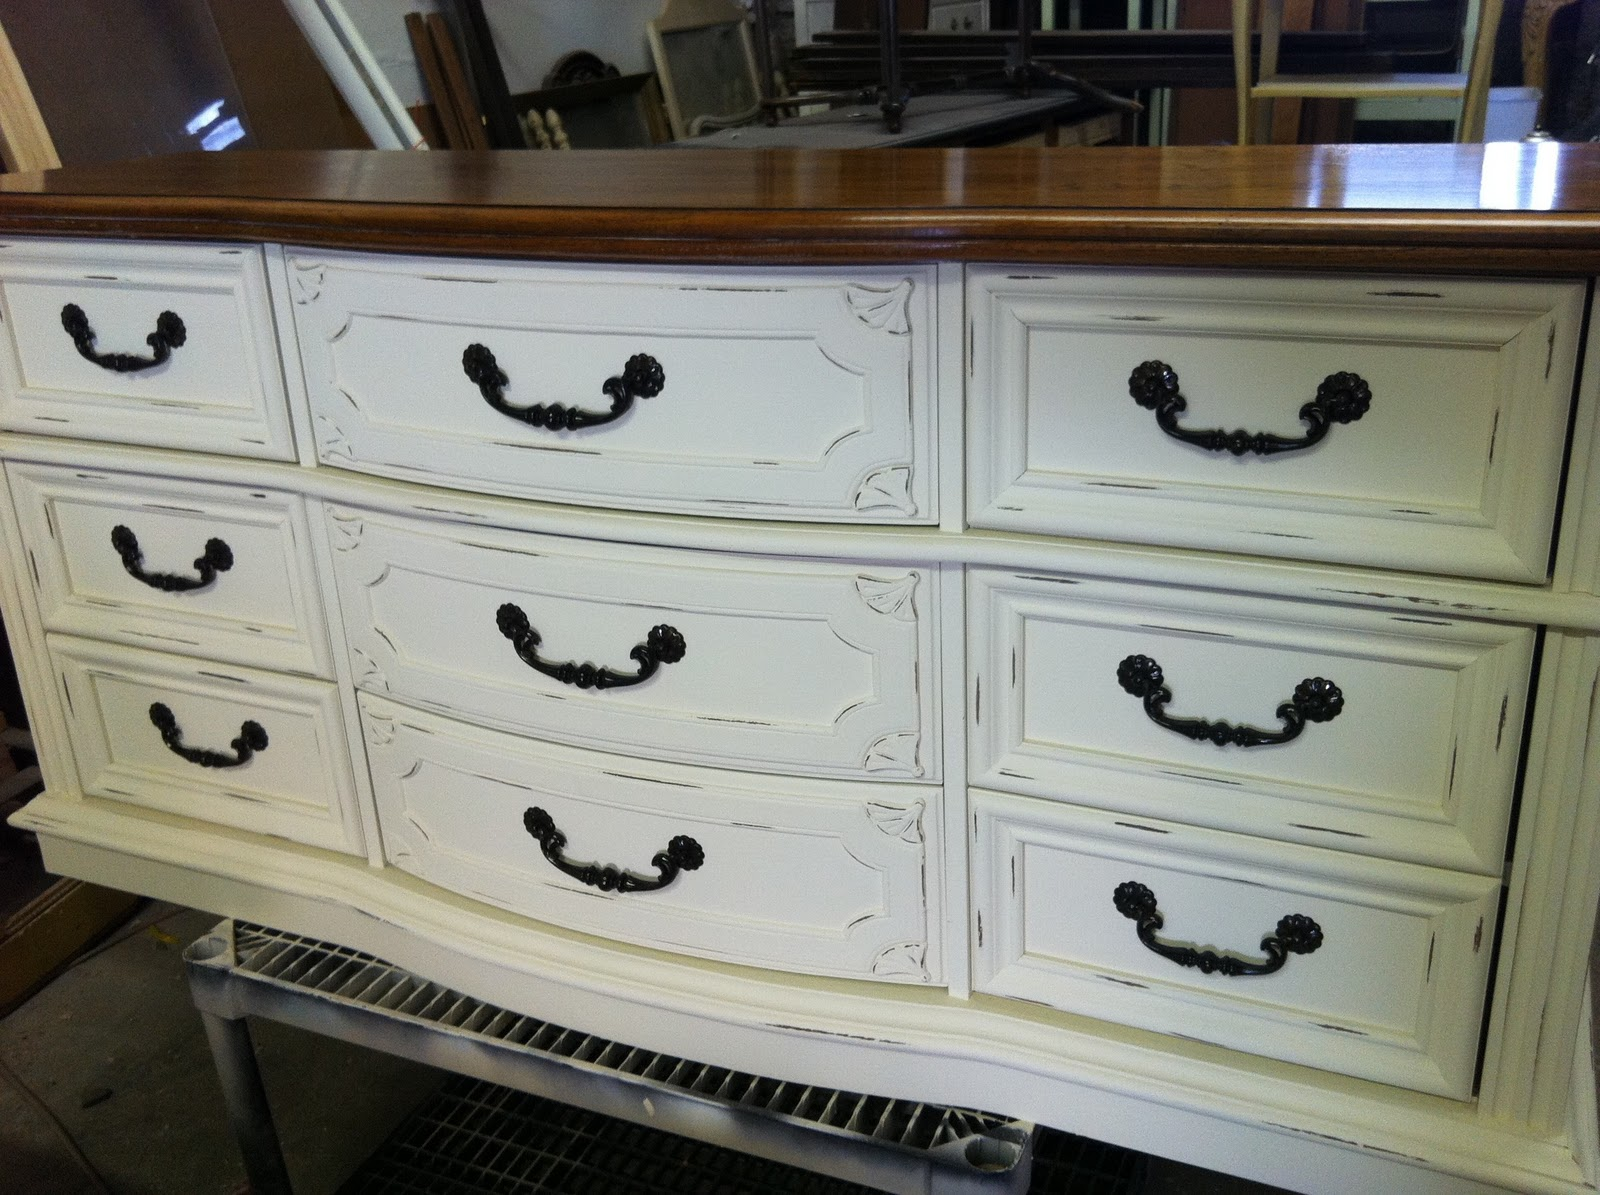 The Funkie Munkie Furniture Two Tone Old White Dresser